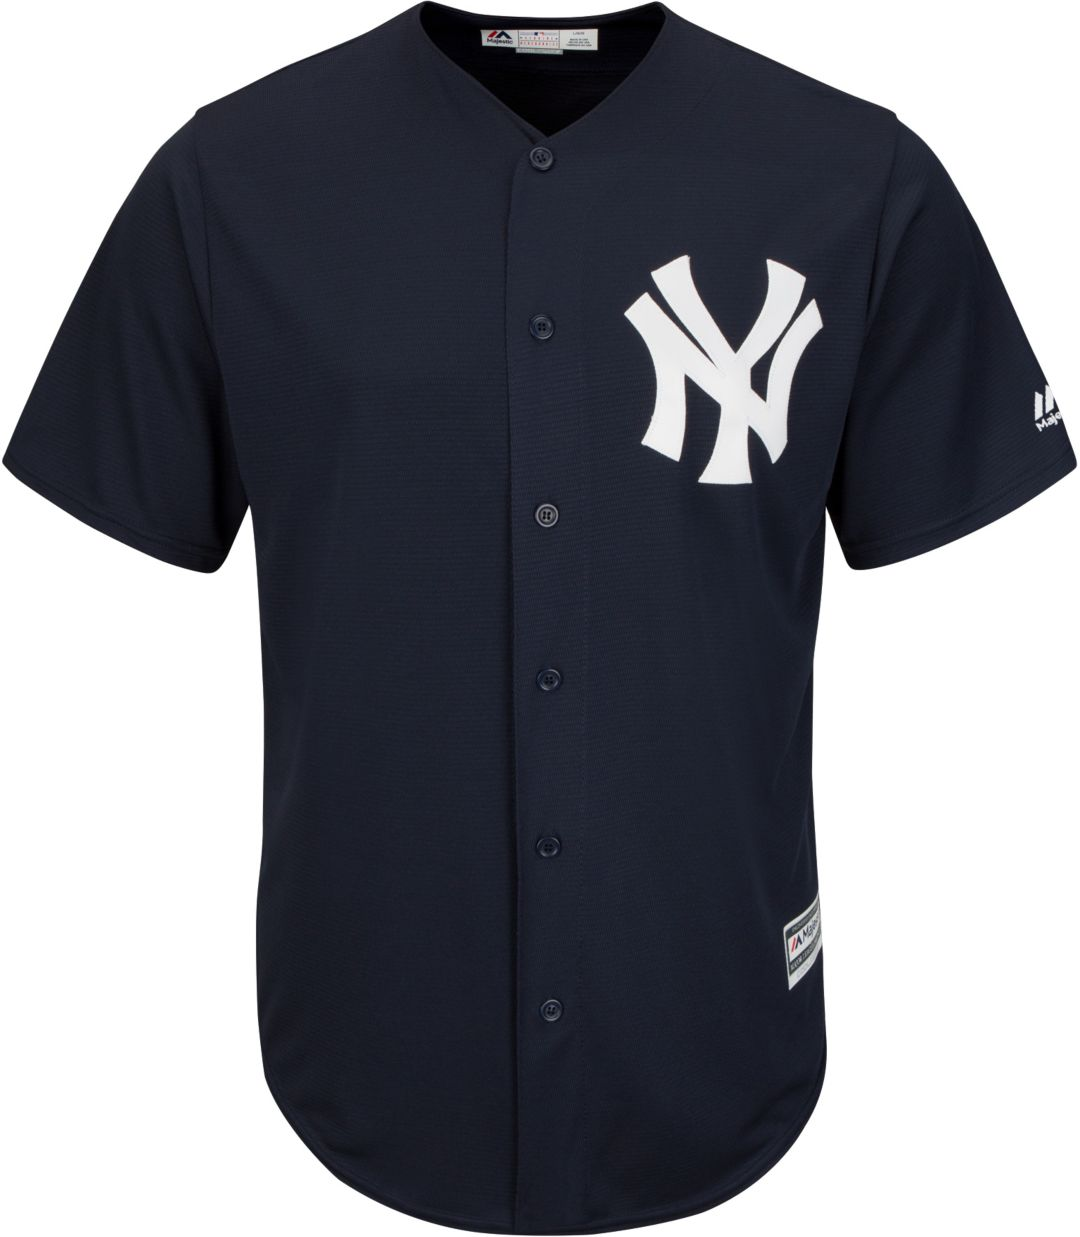 new products b0ce6 f459b Majestic Men's Replica New York Yankees Cool Base Alternate Navy Jersey